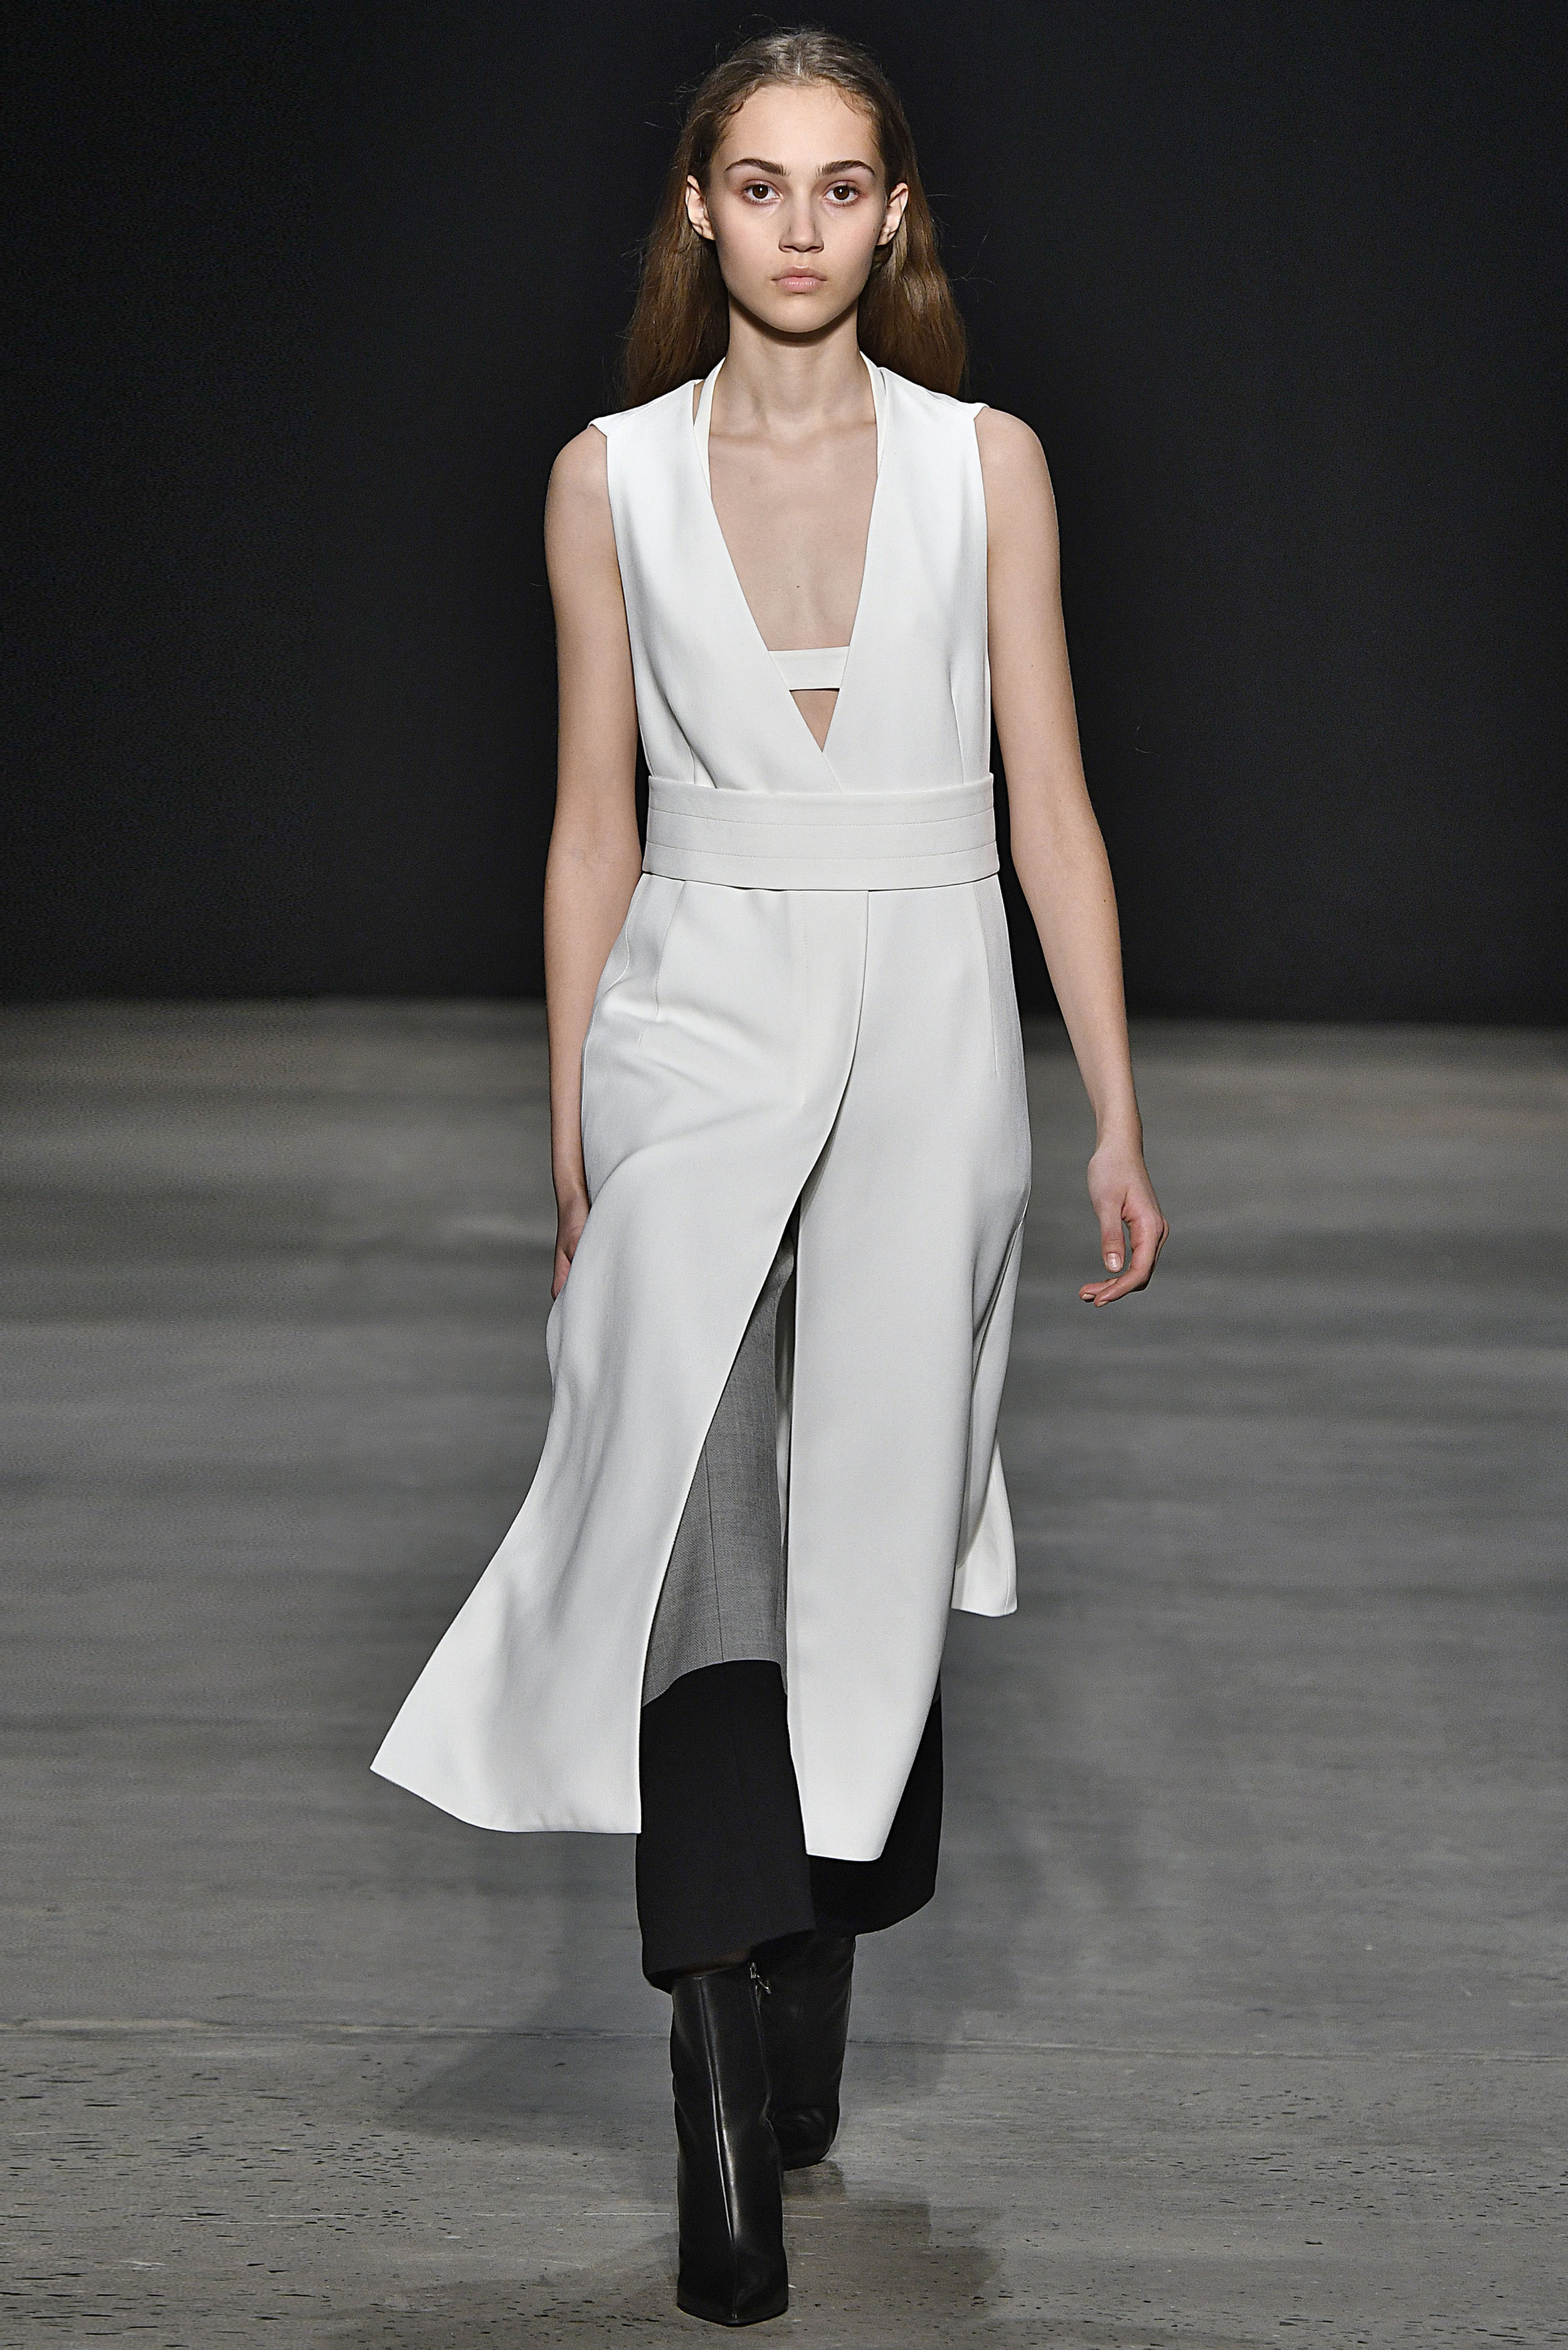 Narciso Rodriguez Fall 2017 collection. White twill crepe vest dress over white silk sling bra with grey/black engineered stripe pant.